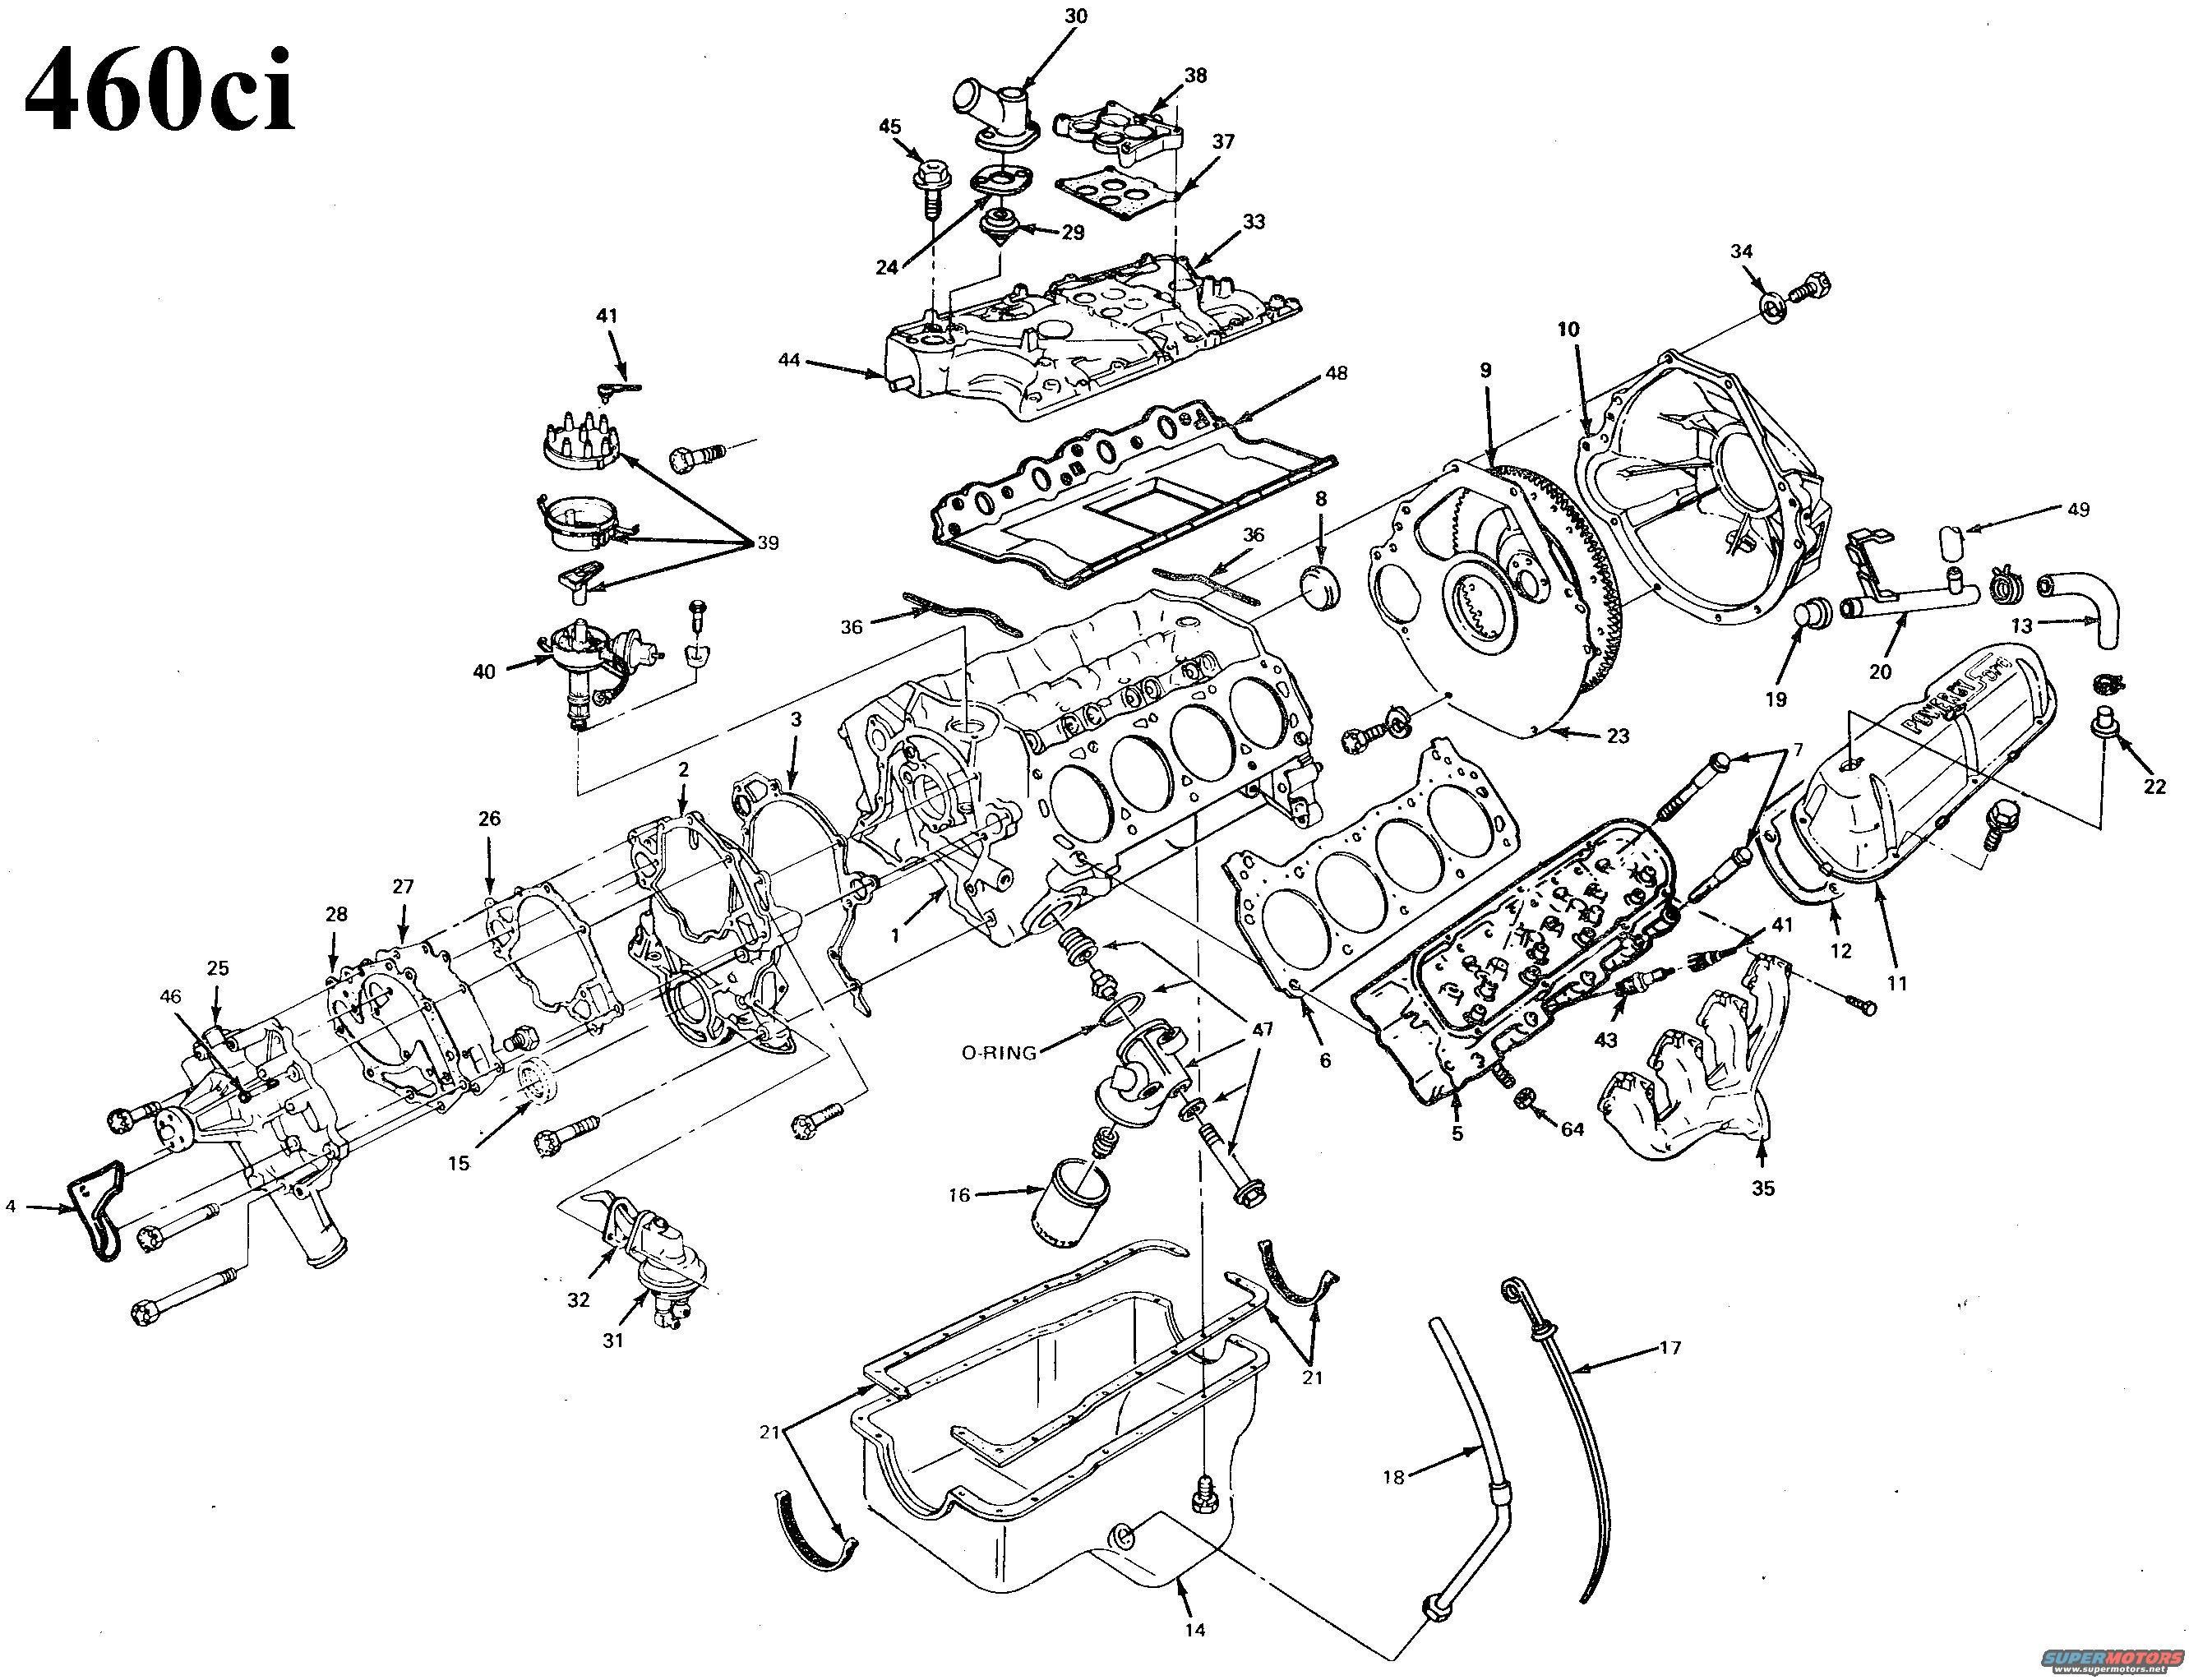 1996 ford Ranger Parts Diagram ford 460 Engine Diagram Wiring Diagram for You Of 1996 ford Ranger Parts Diagram